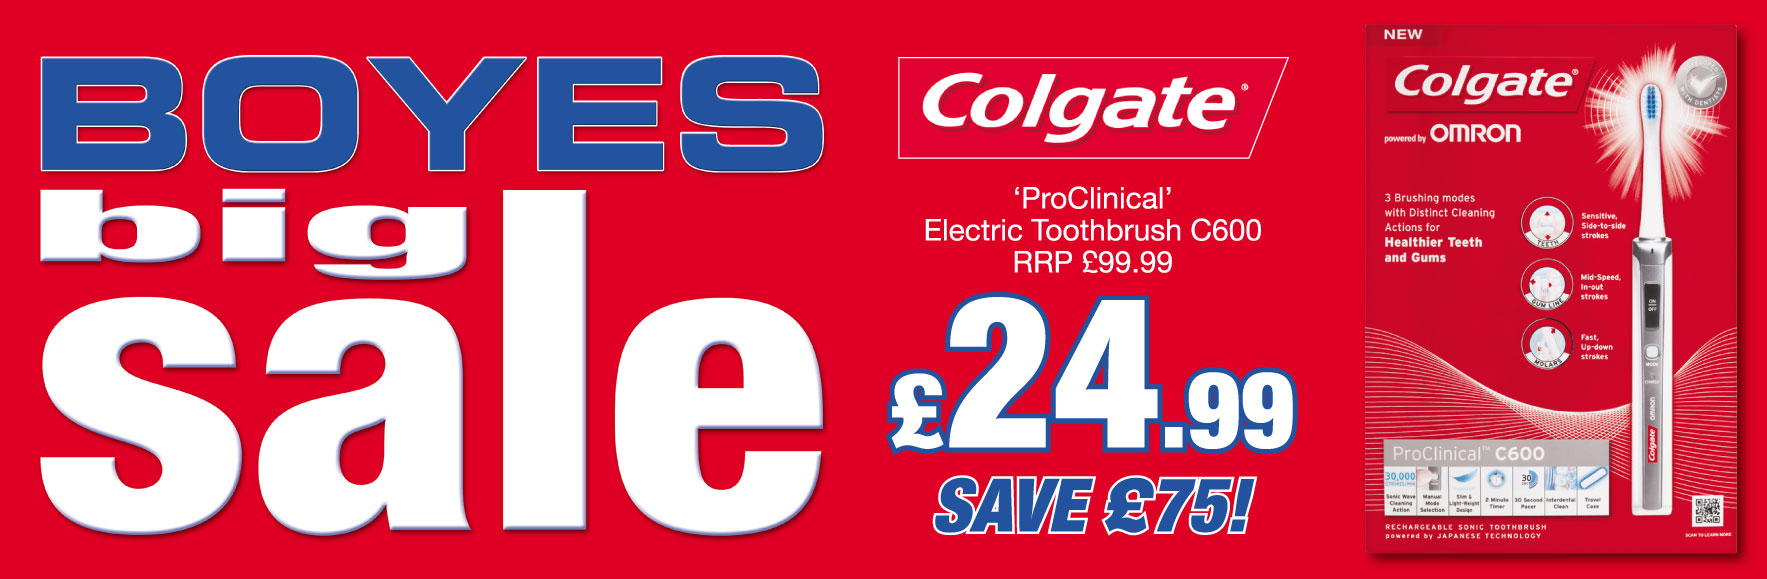 Colgate ProClinical C600 Electric Toothbrush SAVE £75 OFF RRP